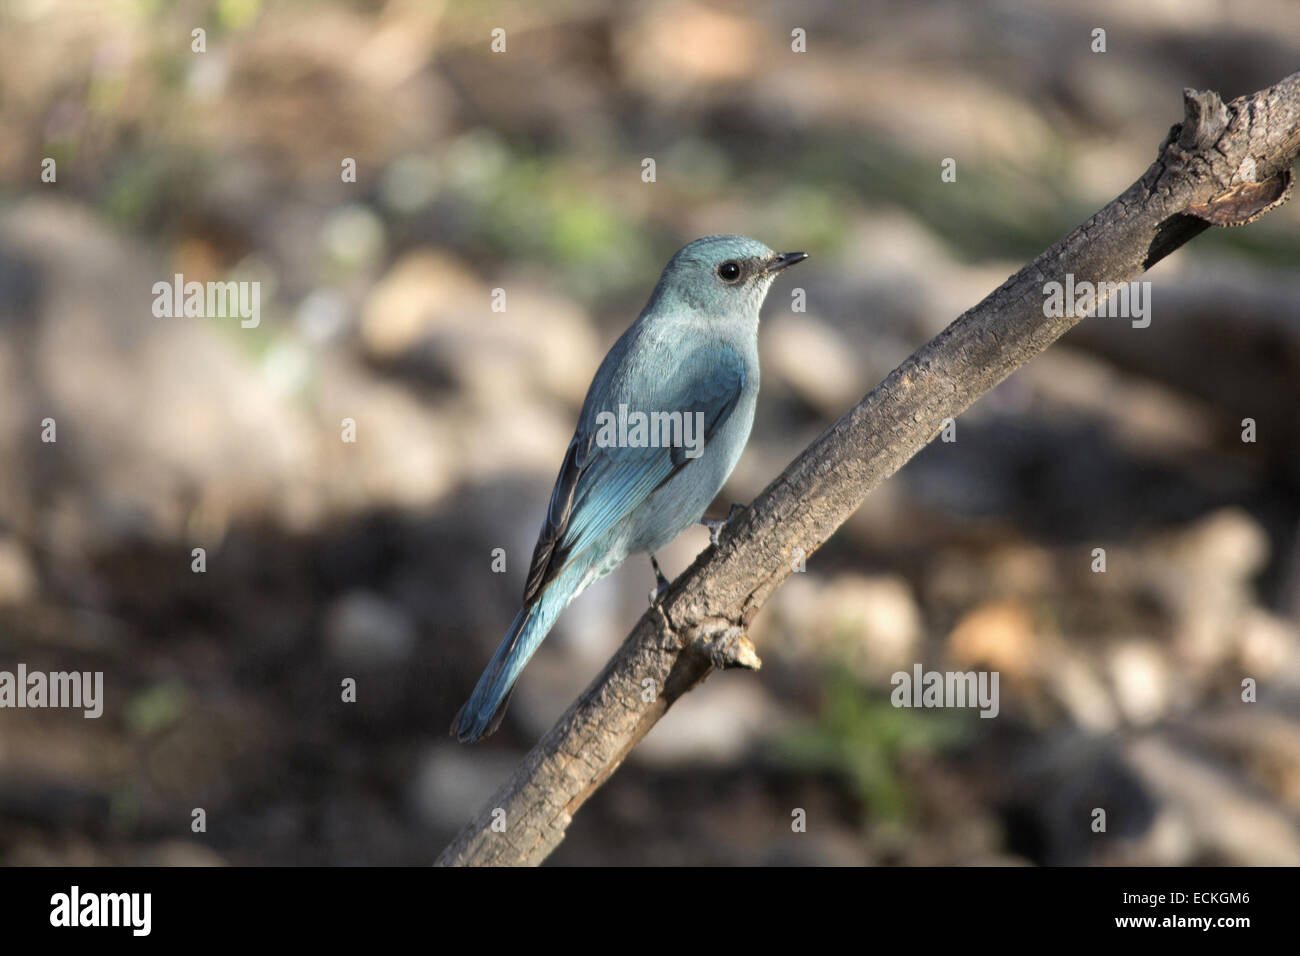 The verditer flycatcher (Eumyias thalassinus)is foundin the Indian subcontinent, especially in the Lower Himalaya. - Stock Image